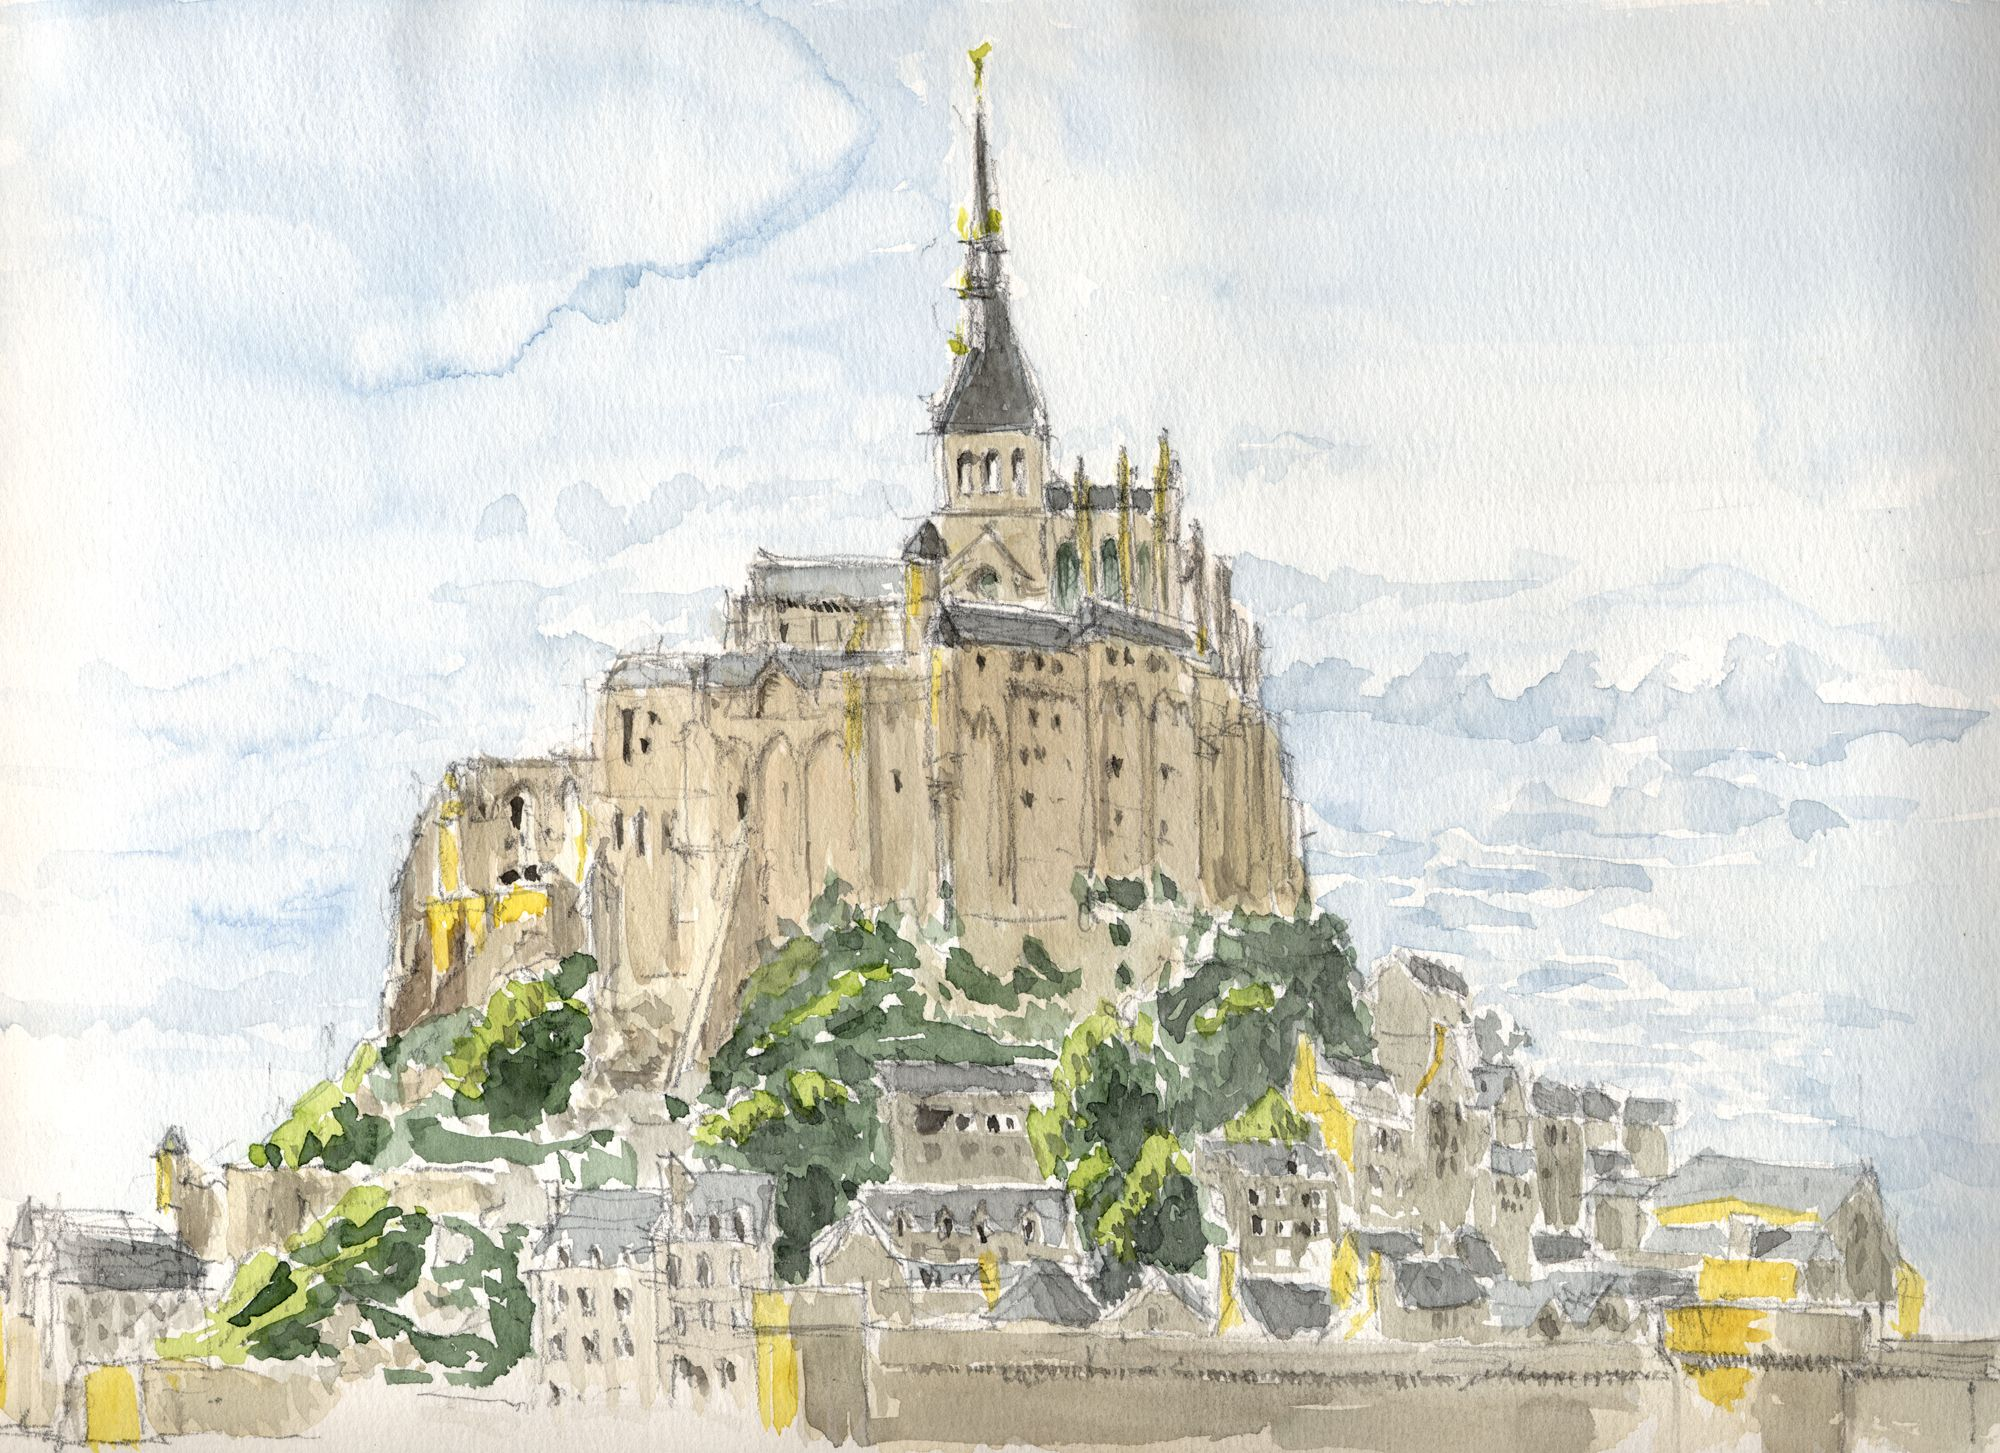 Watercolour Mont Saint Michelle Bretagne France 2009 By Curro